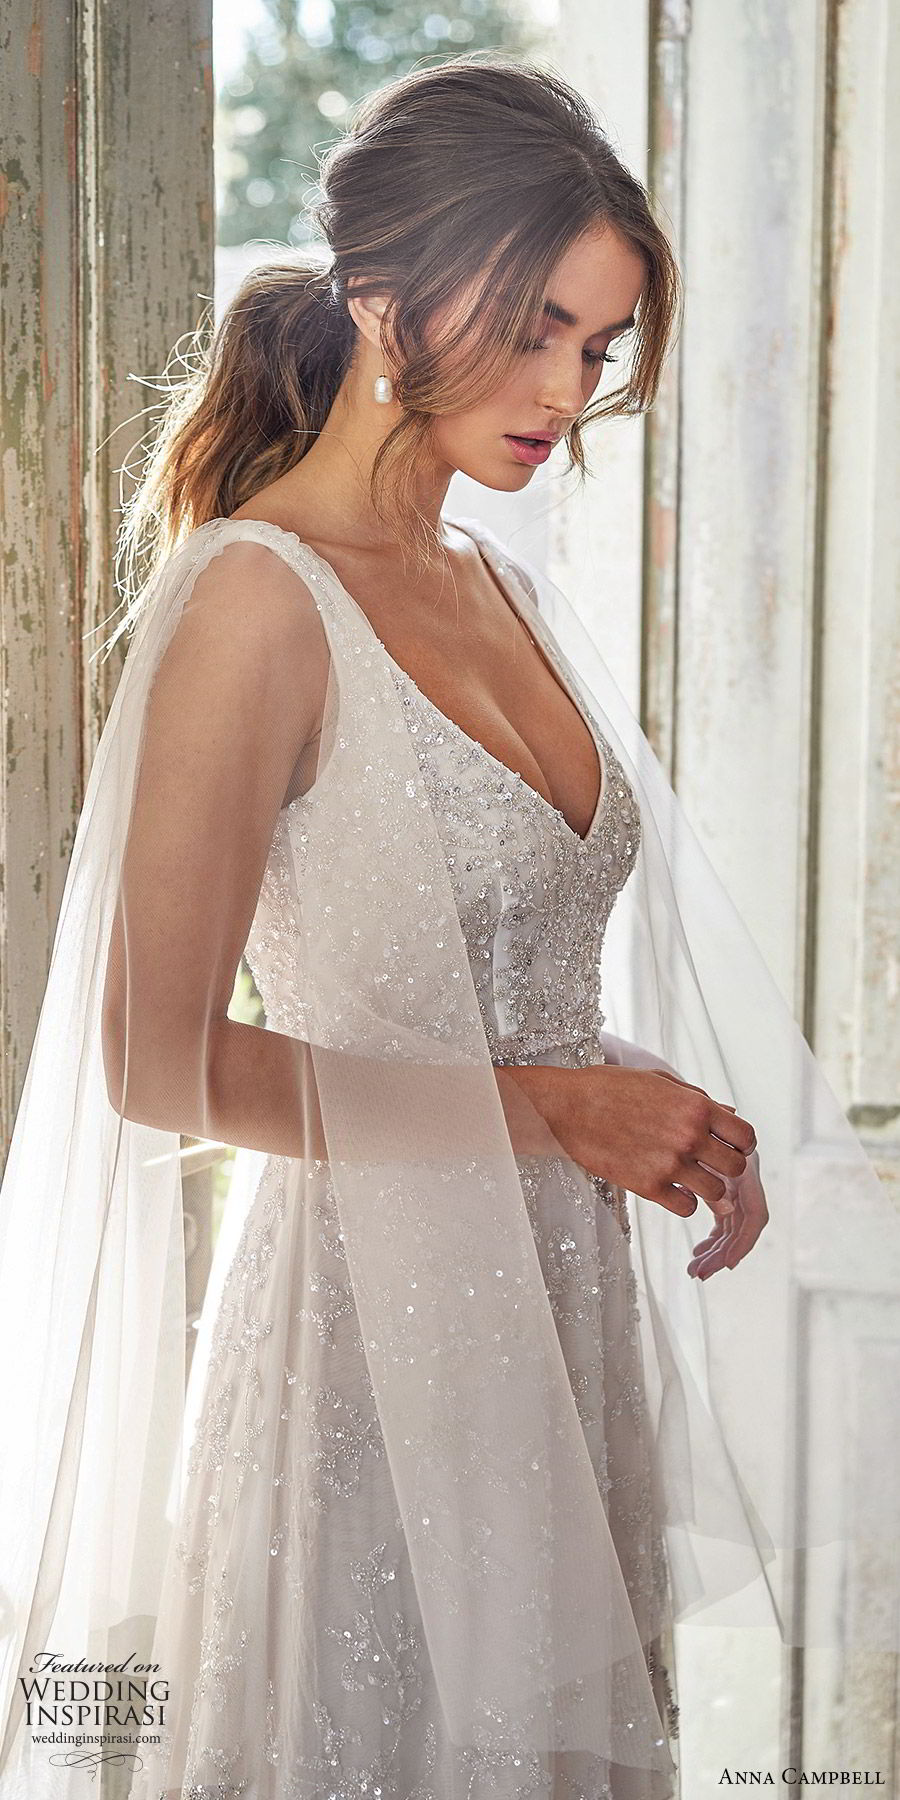 anna campbell 2020 bridal illusion flare sleeves thick straps fully embellished ball gown a line wedding dress (4) romantic glitzy blush color chapel train zsv